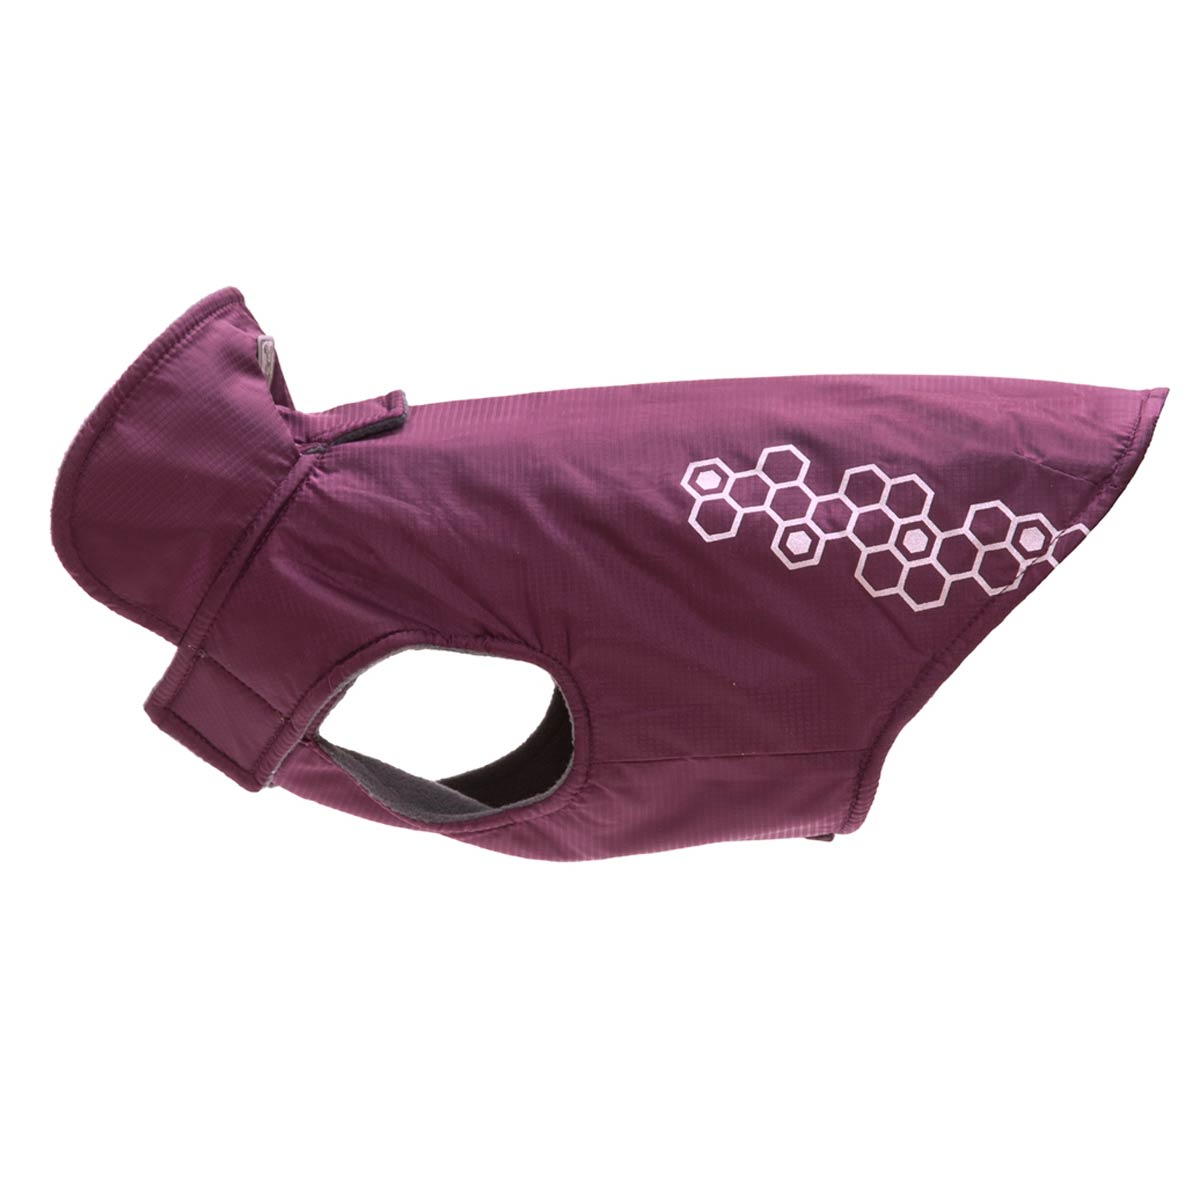 Venture Outerwear Dog Coat - Grapes